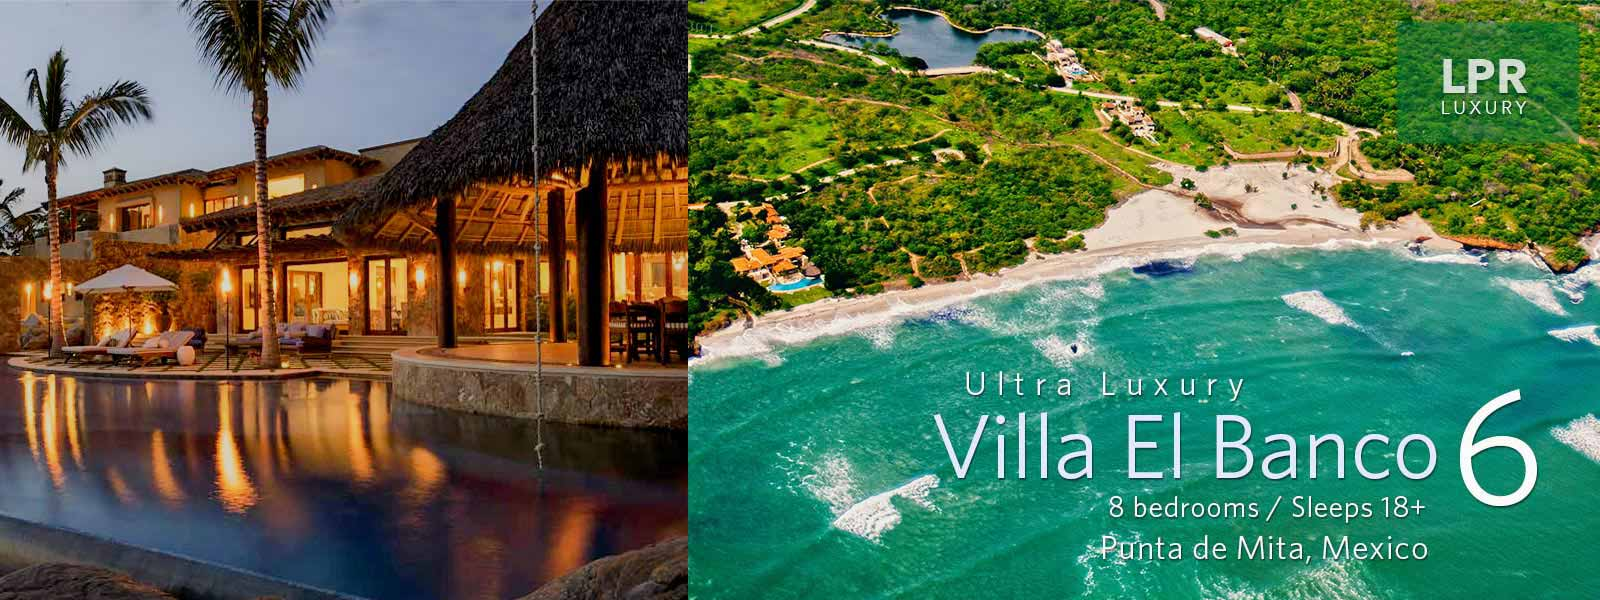 Villa El Banco 6 - Luxury Punta Mita Rentals and Real Estate - Vallarta | Nayarit, Mexico